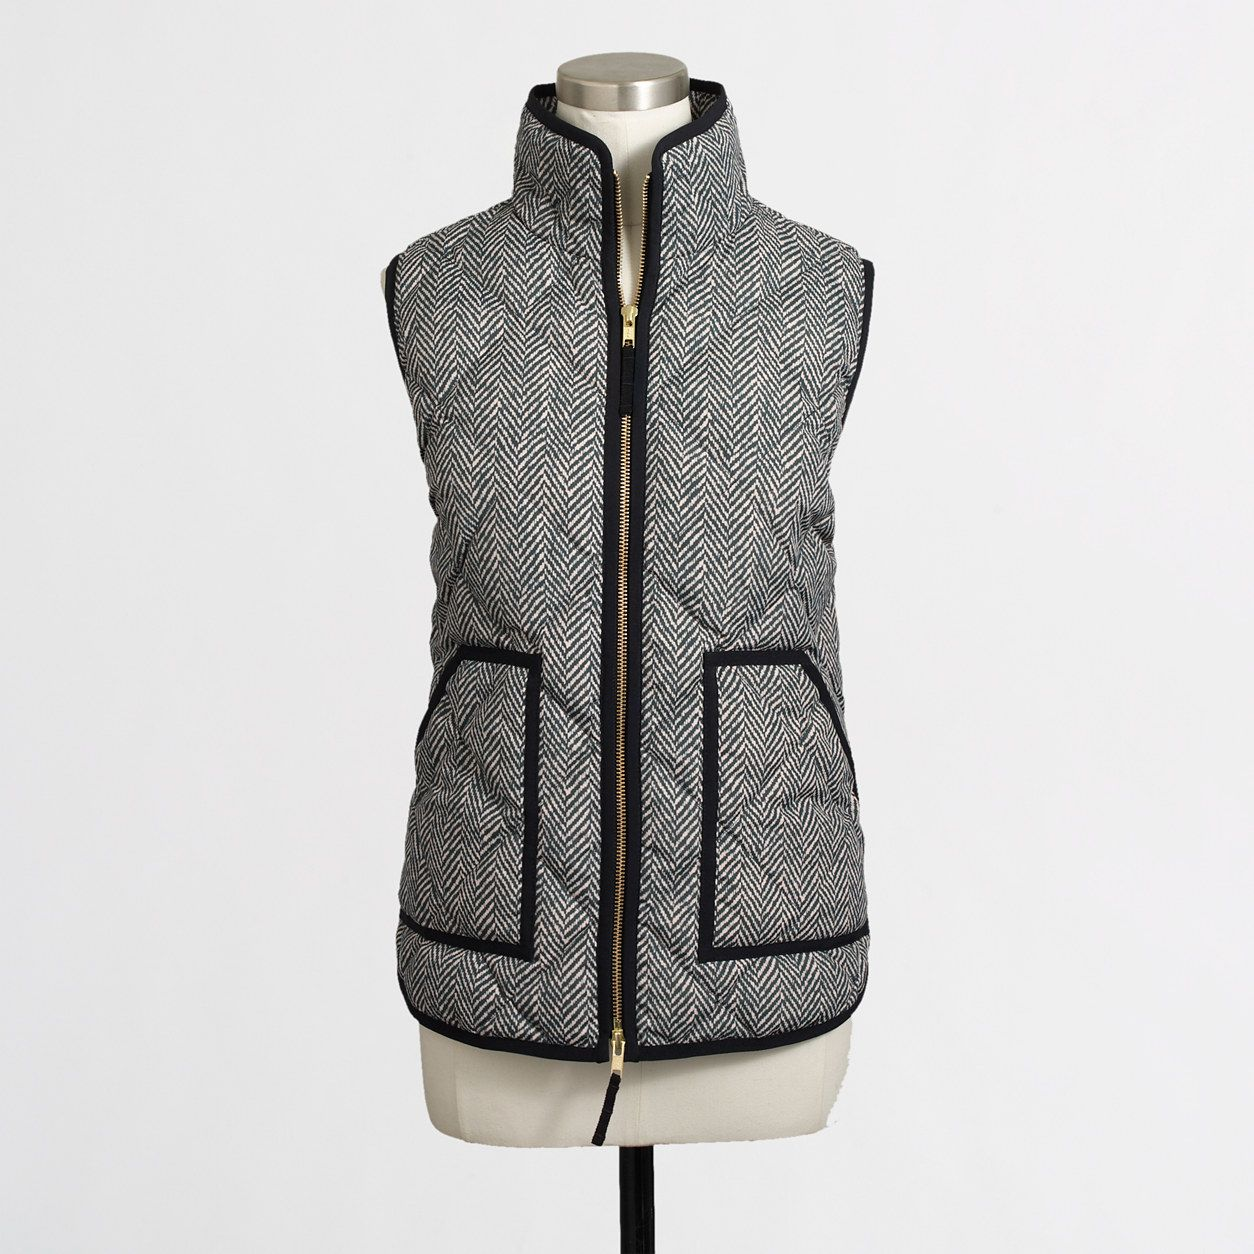 Cute and stylish and sleek vest. This is a jcrew factory puffer ...